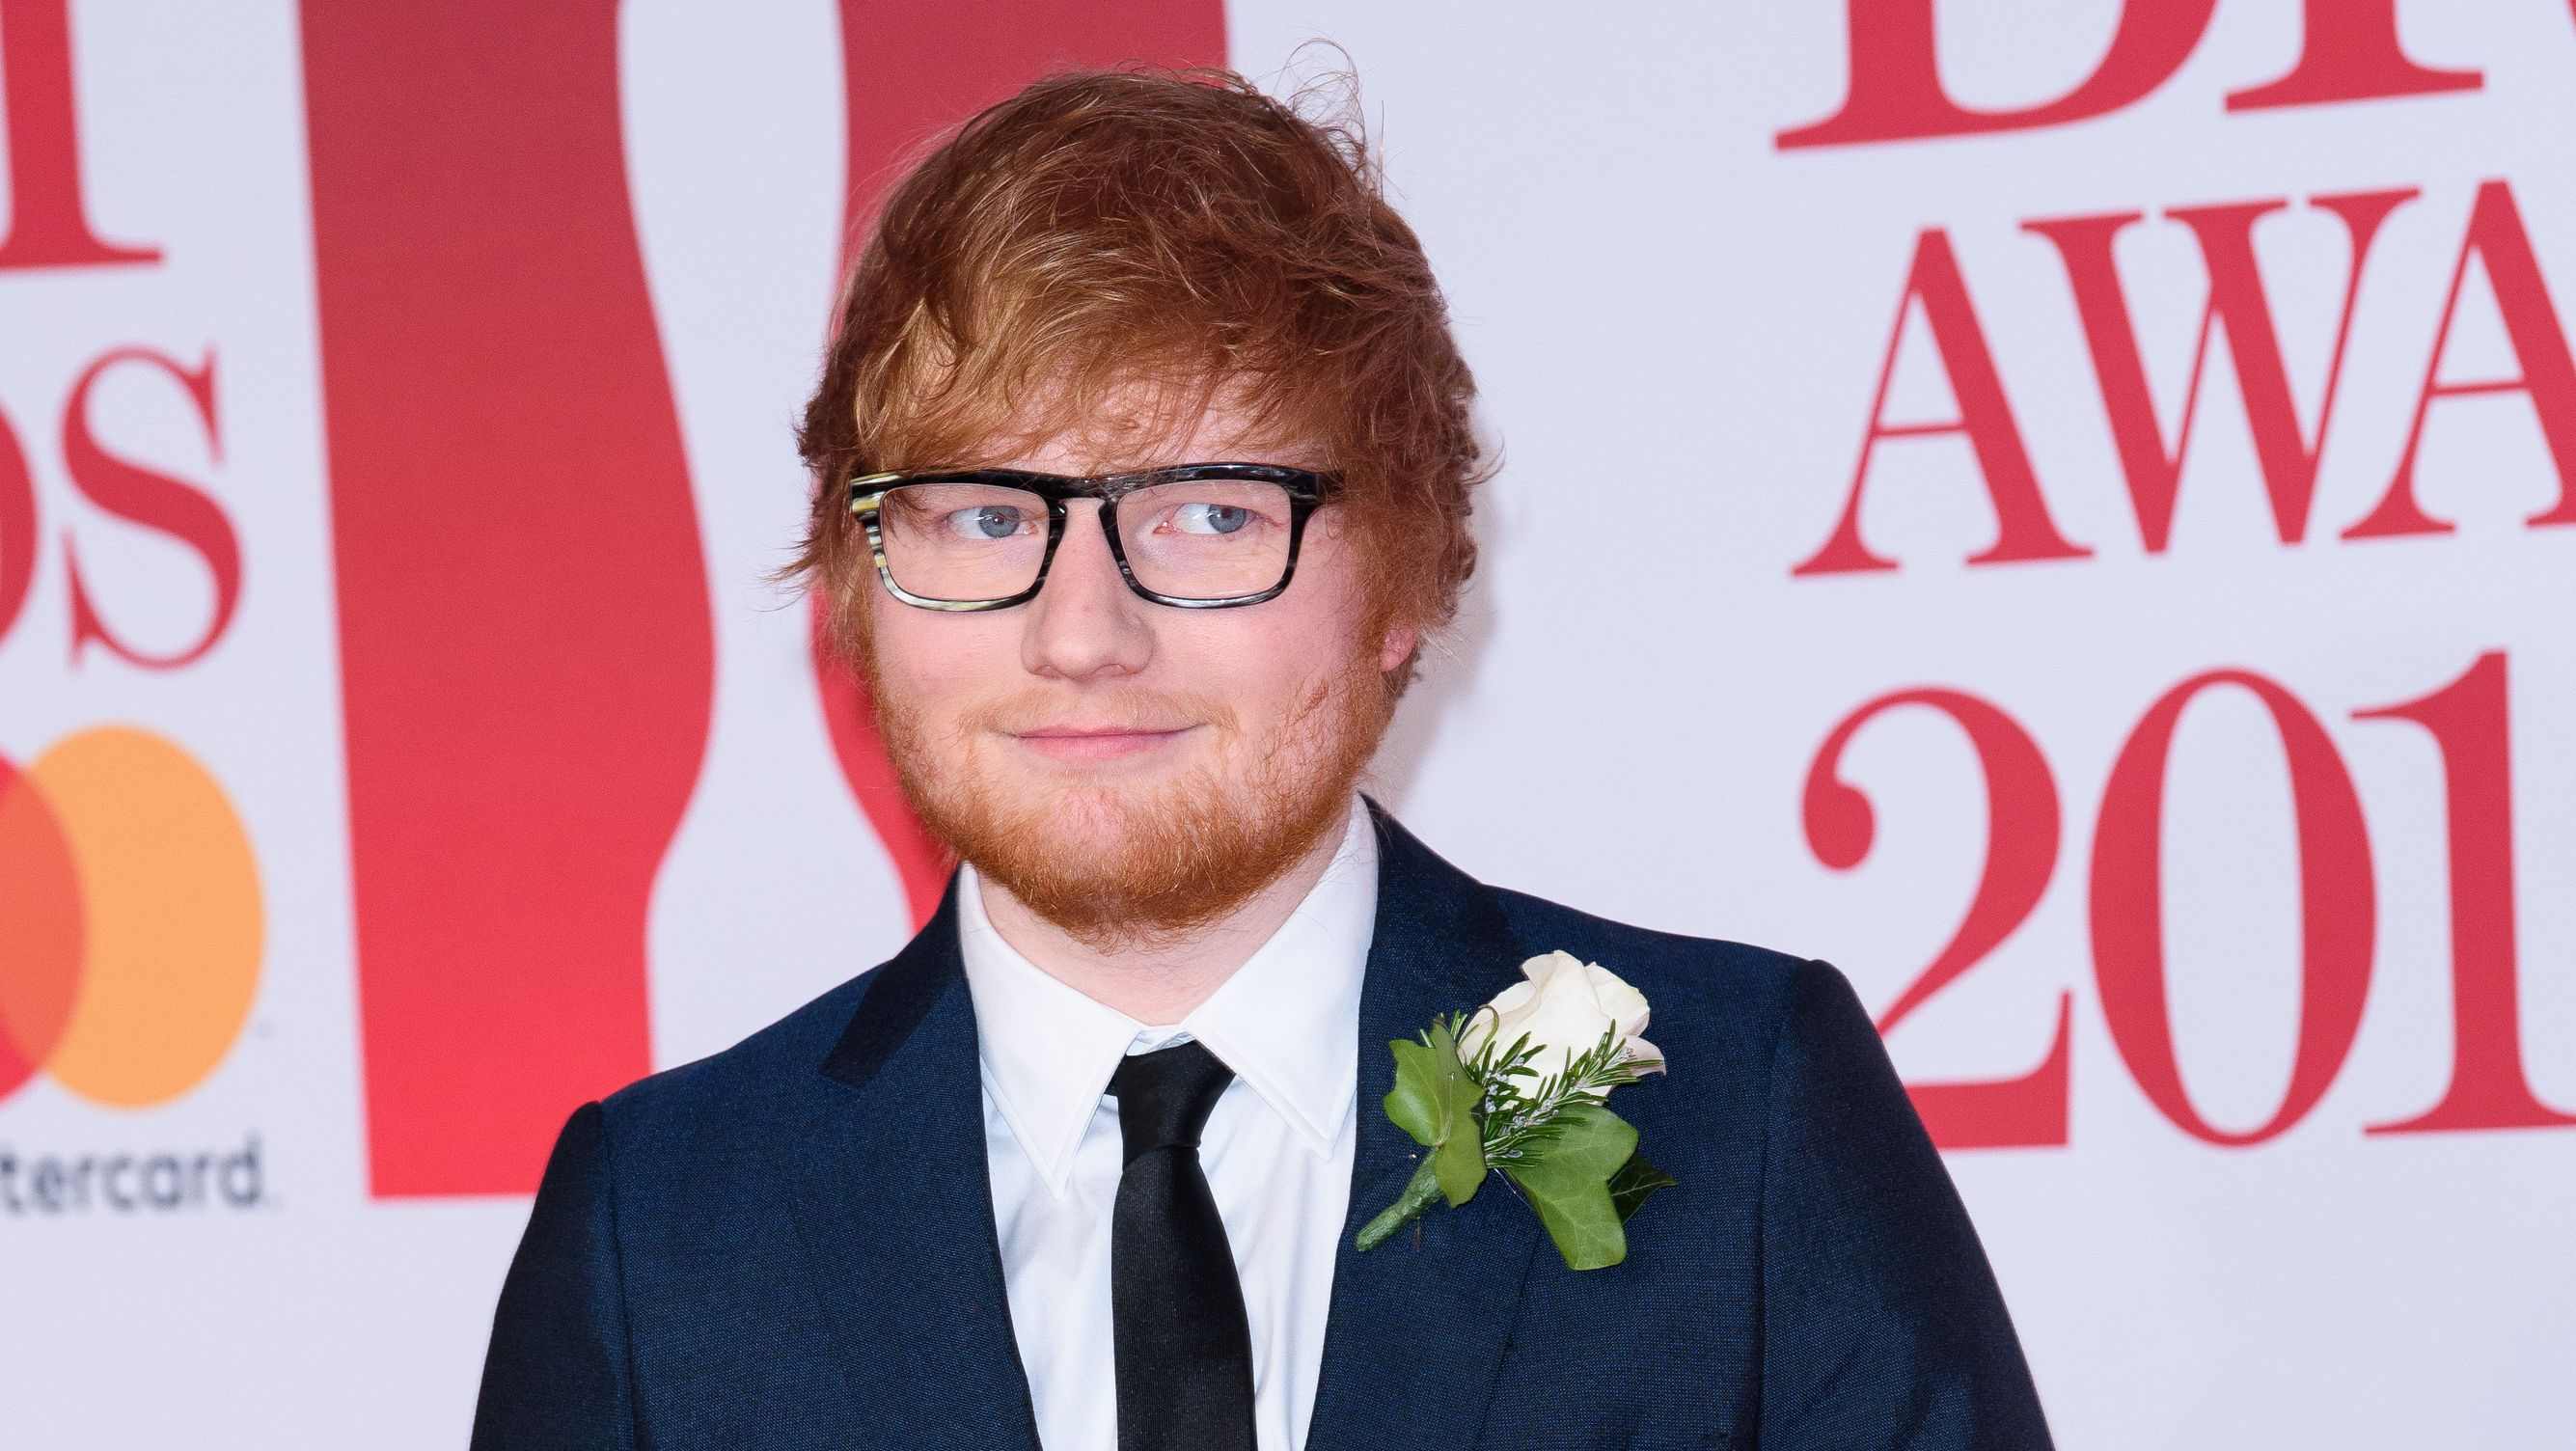 Ed Sheeran reveals that he has NOT married Cherry Seaborn